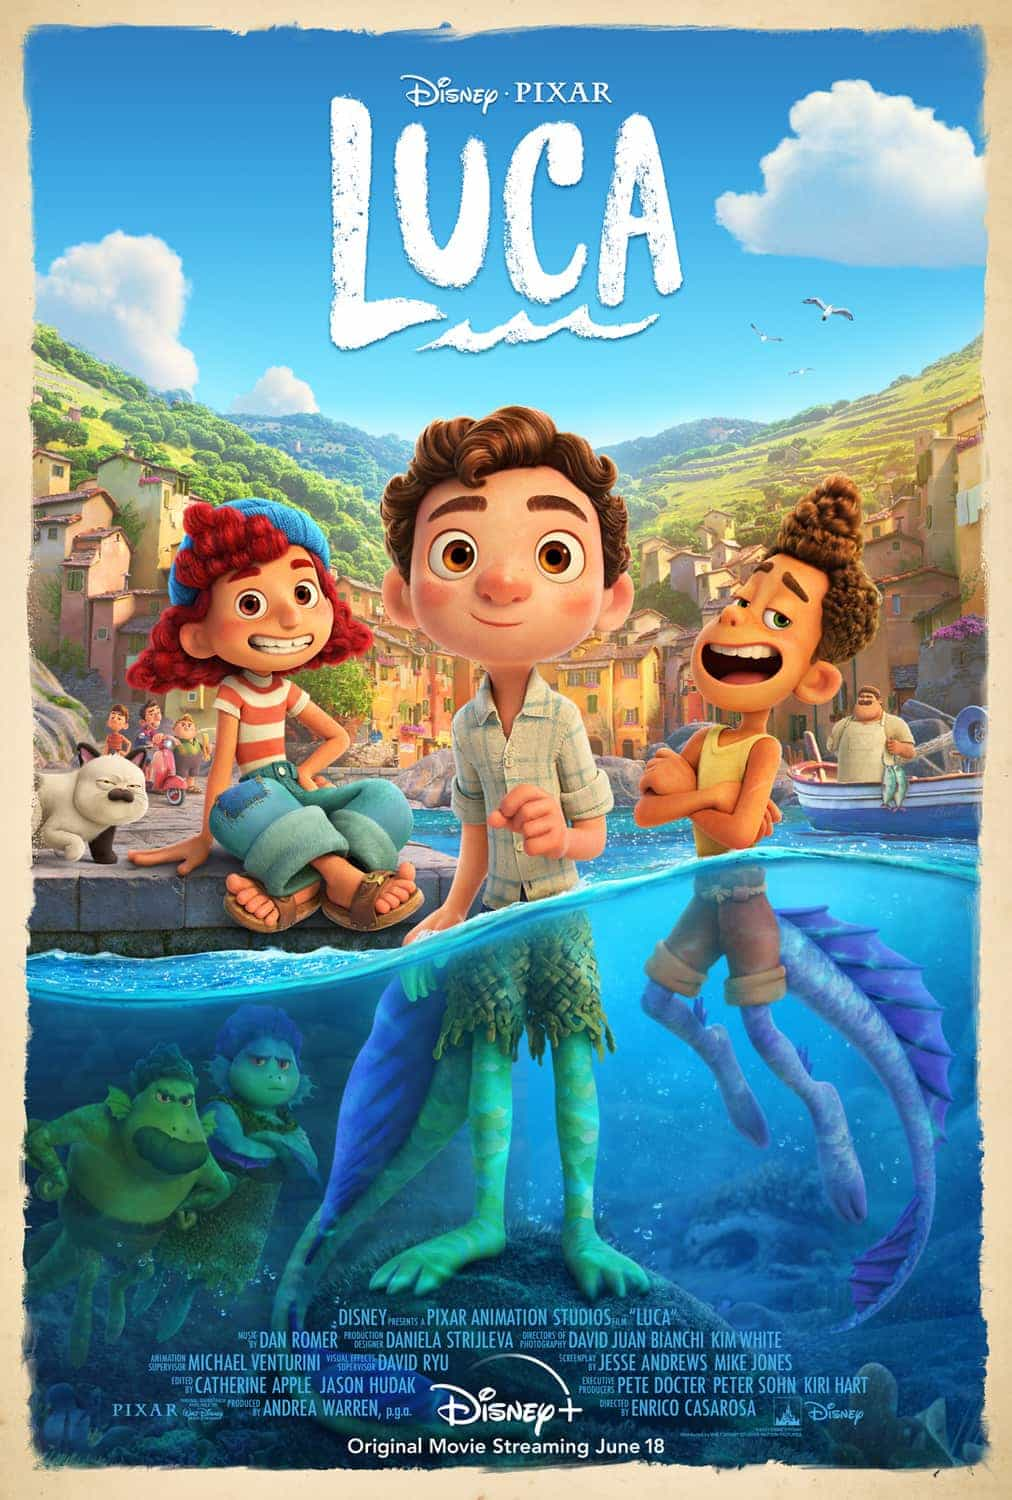 New poster for Disney/Pixars Luca - new trailer coming 25th February, release date 18th June 2021